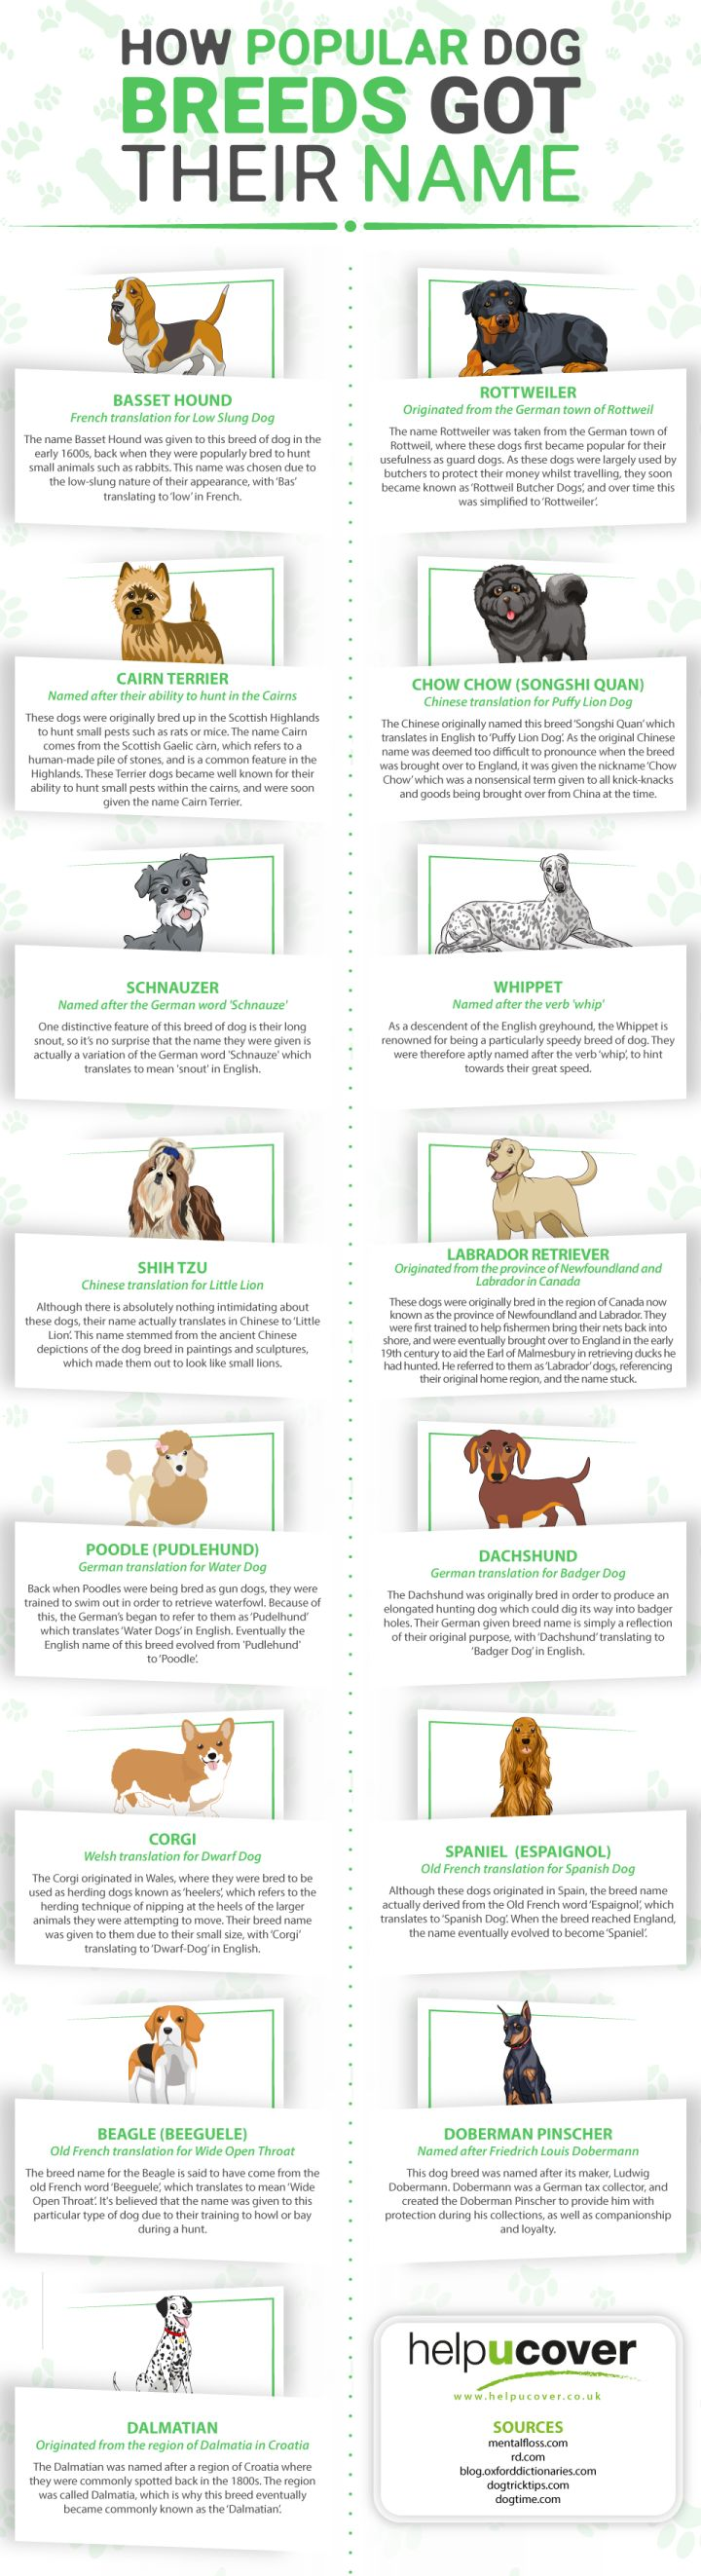 How Popular Dog Breeds Got Their Name